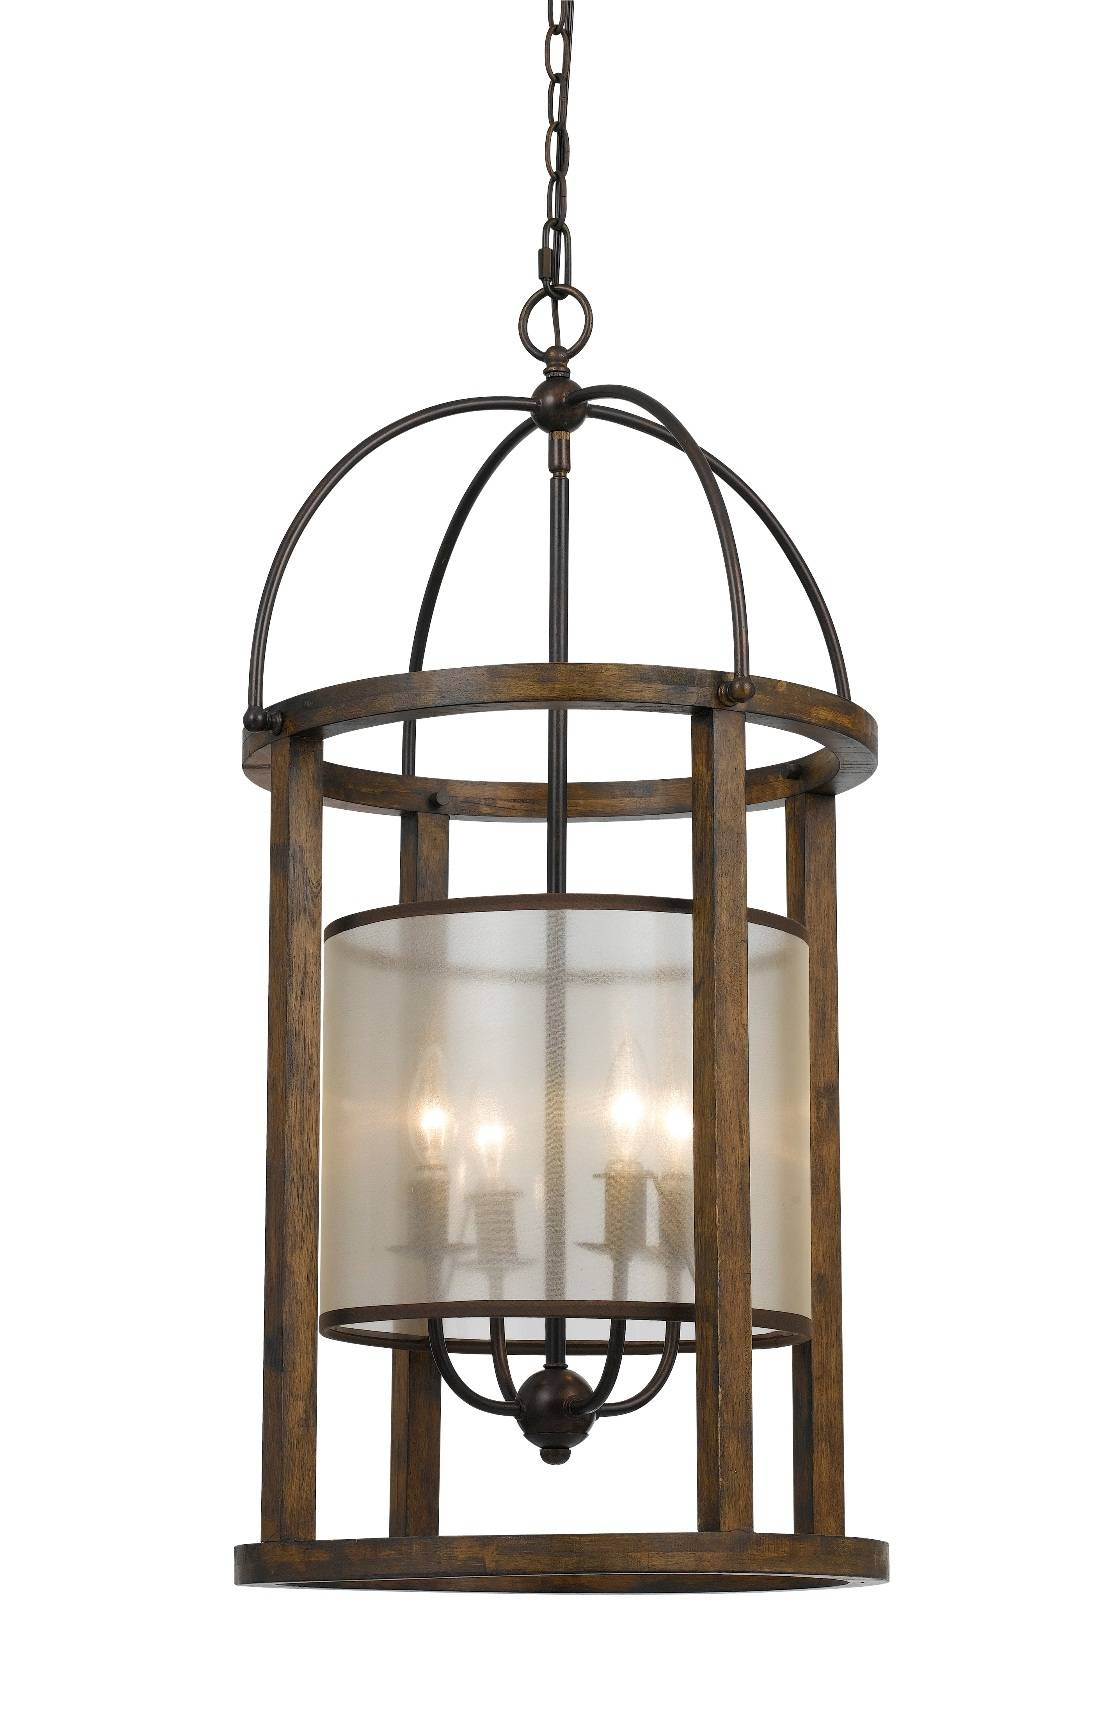 Iron & Wood Sheer Shade Chandelier 16"